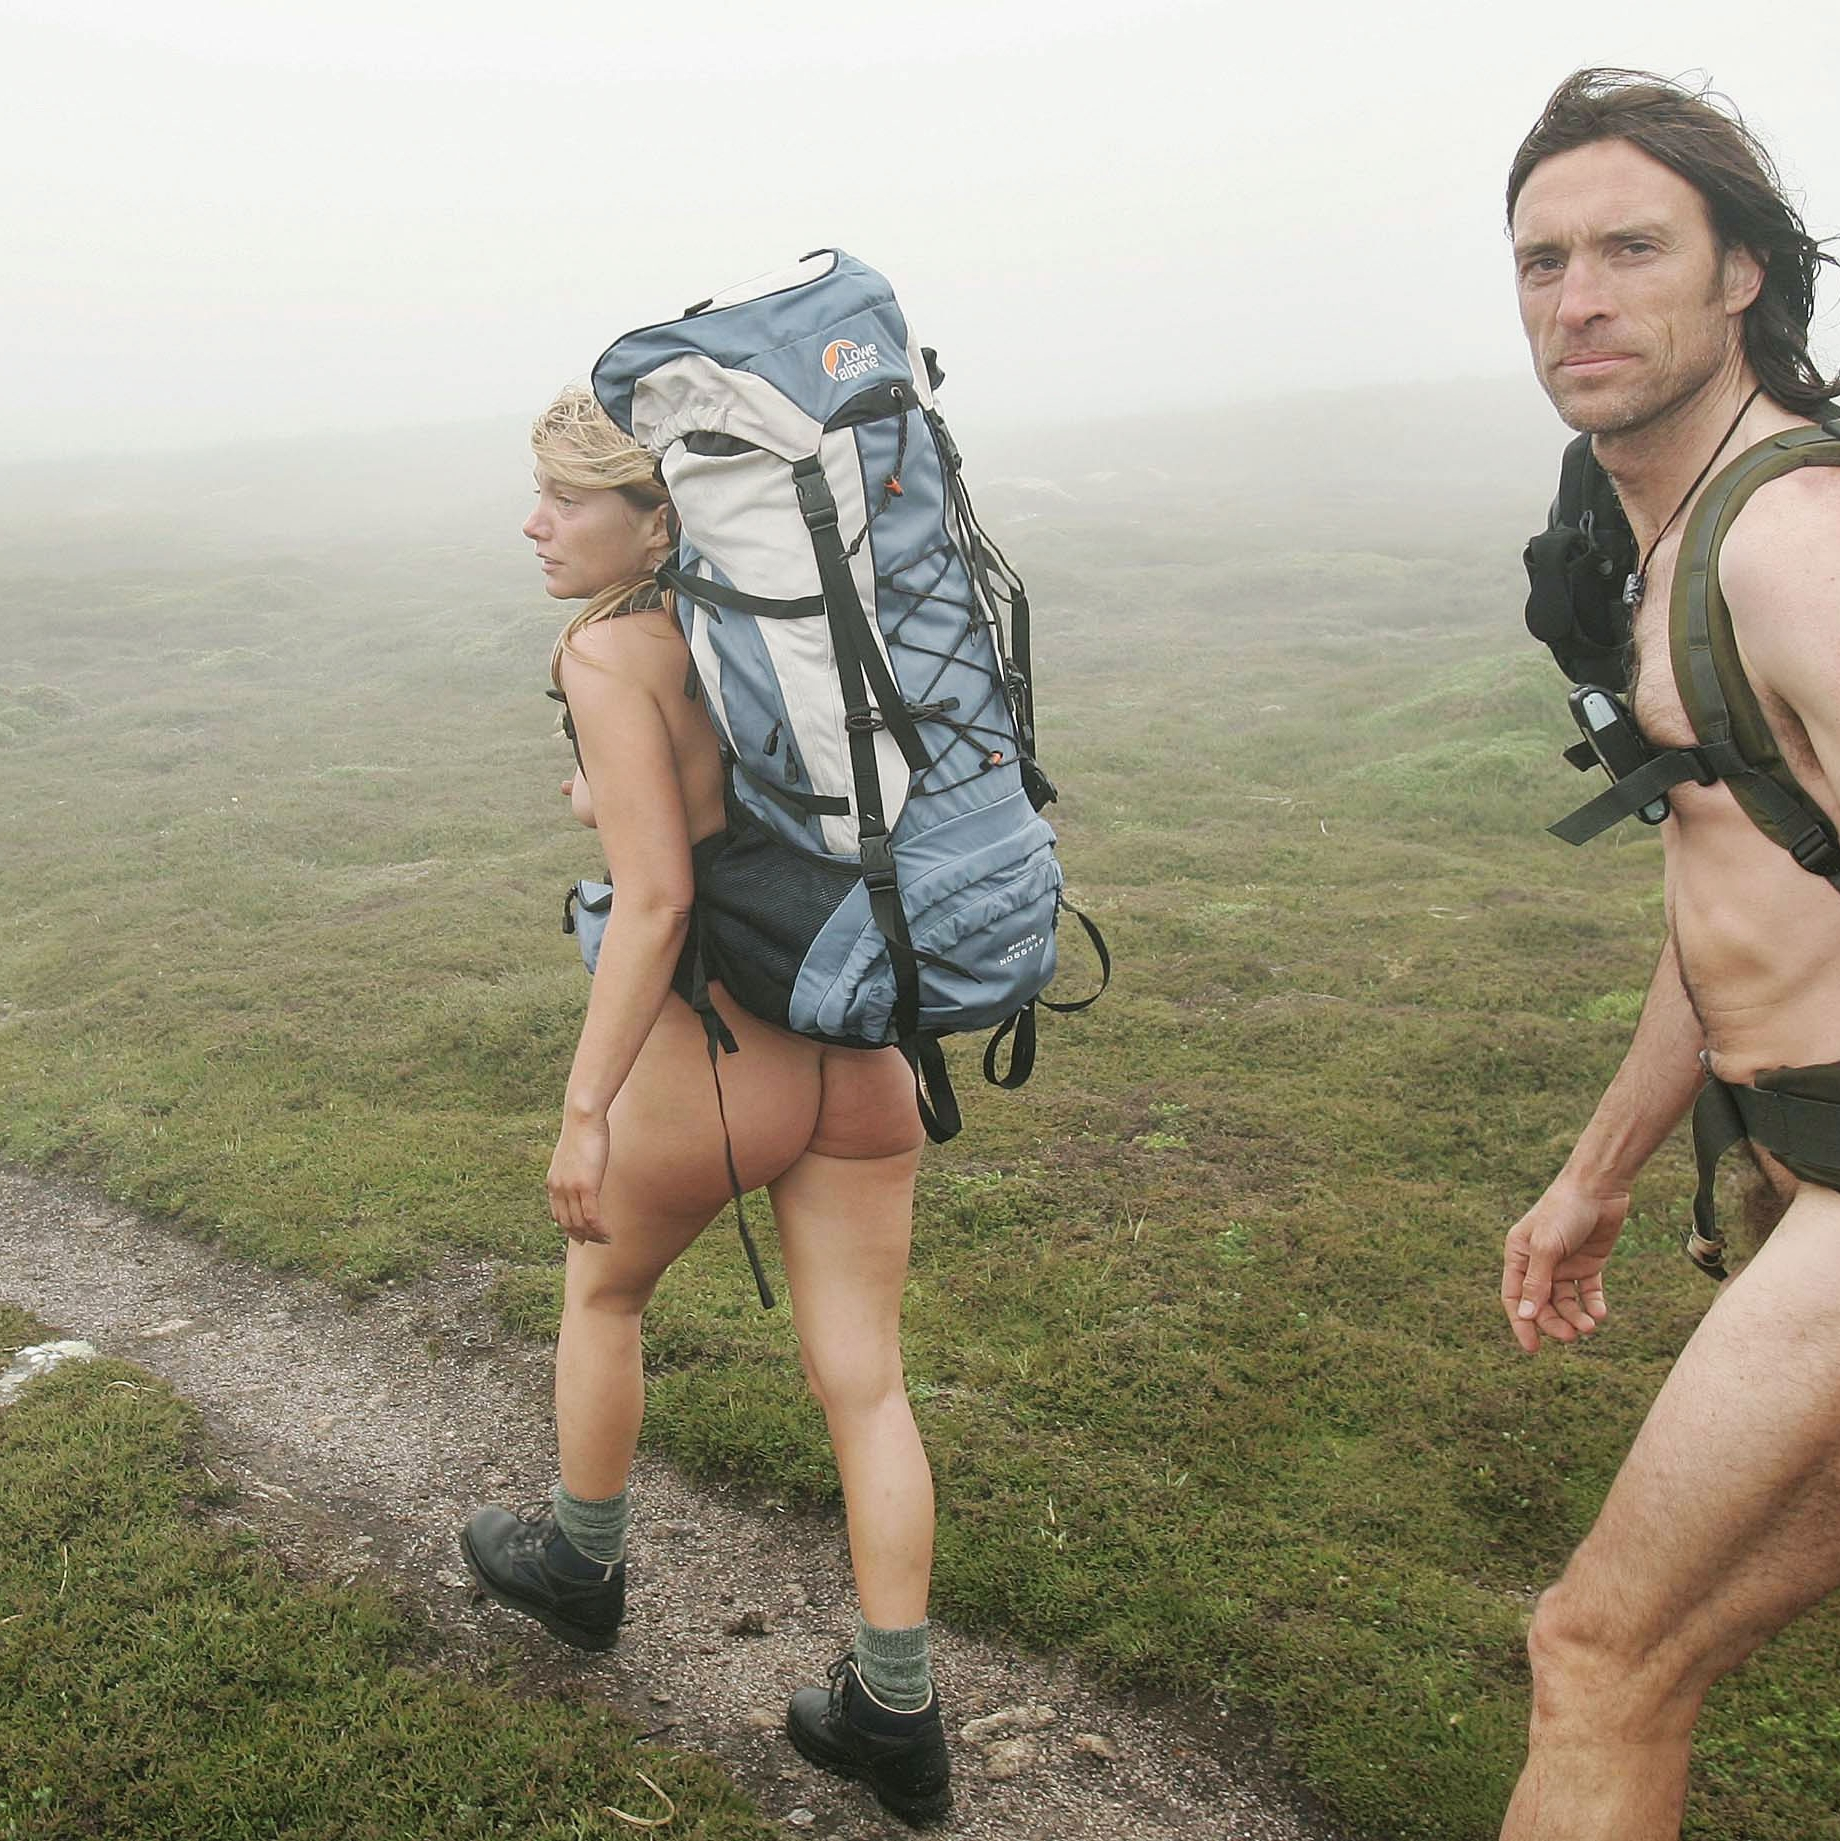 Happy Nude Hiking Day Heres How To Legally Make The Most Of It Mens Journal